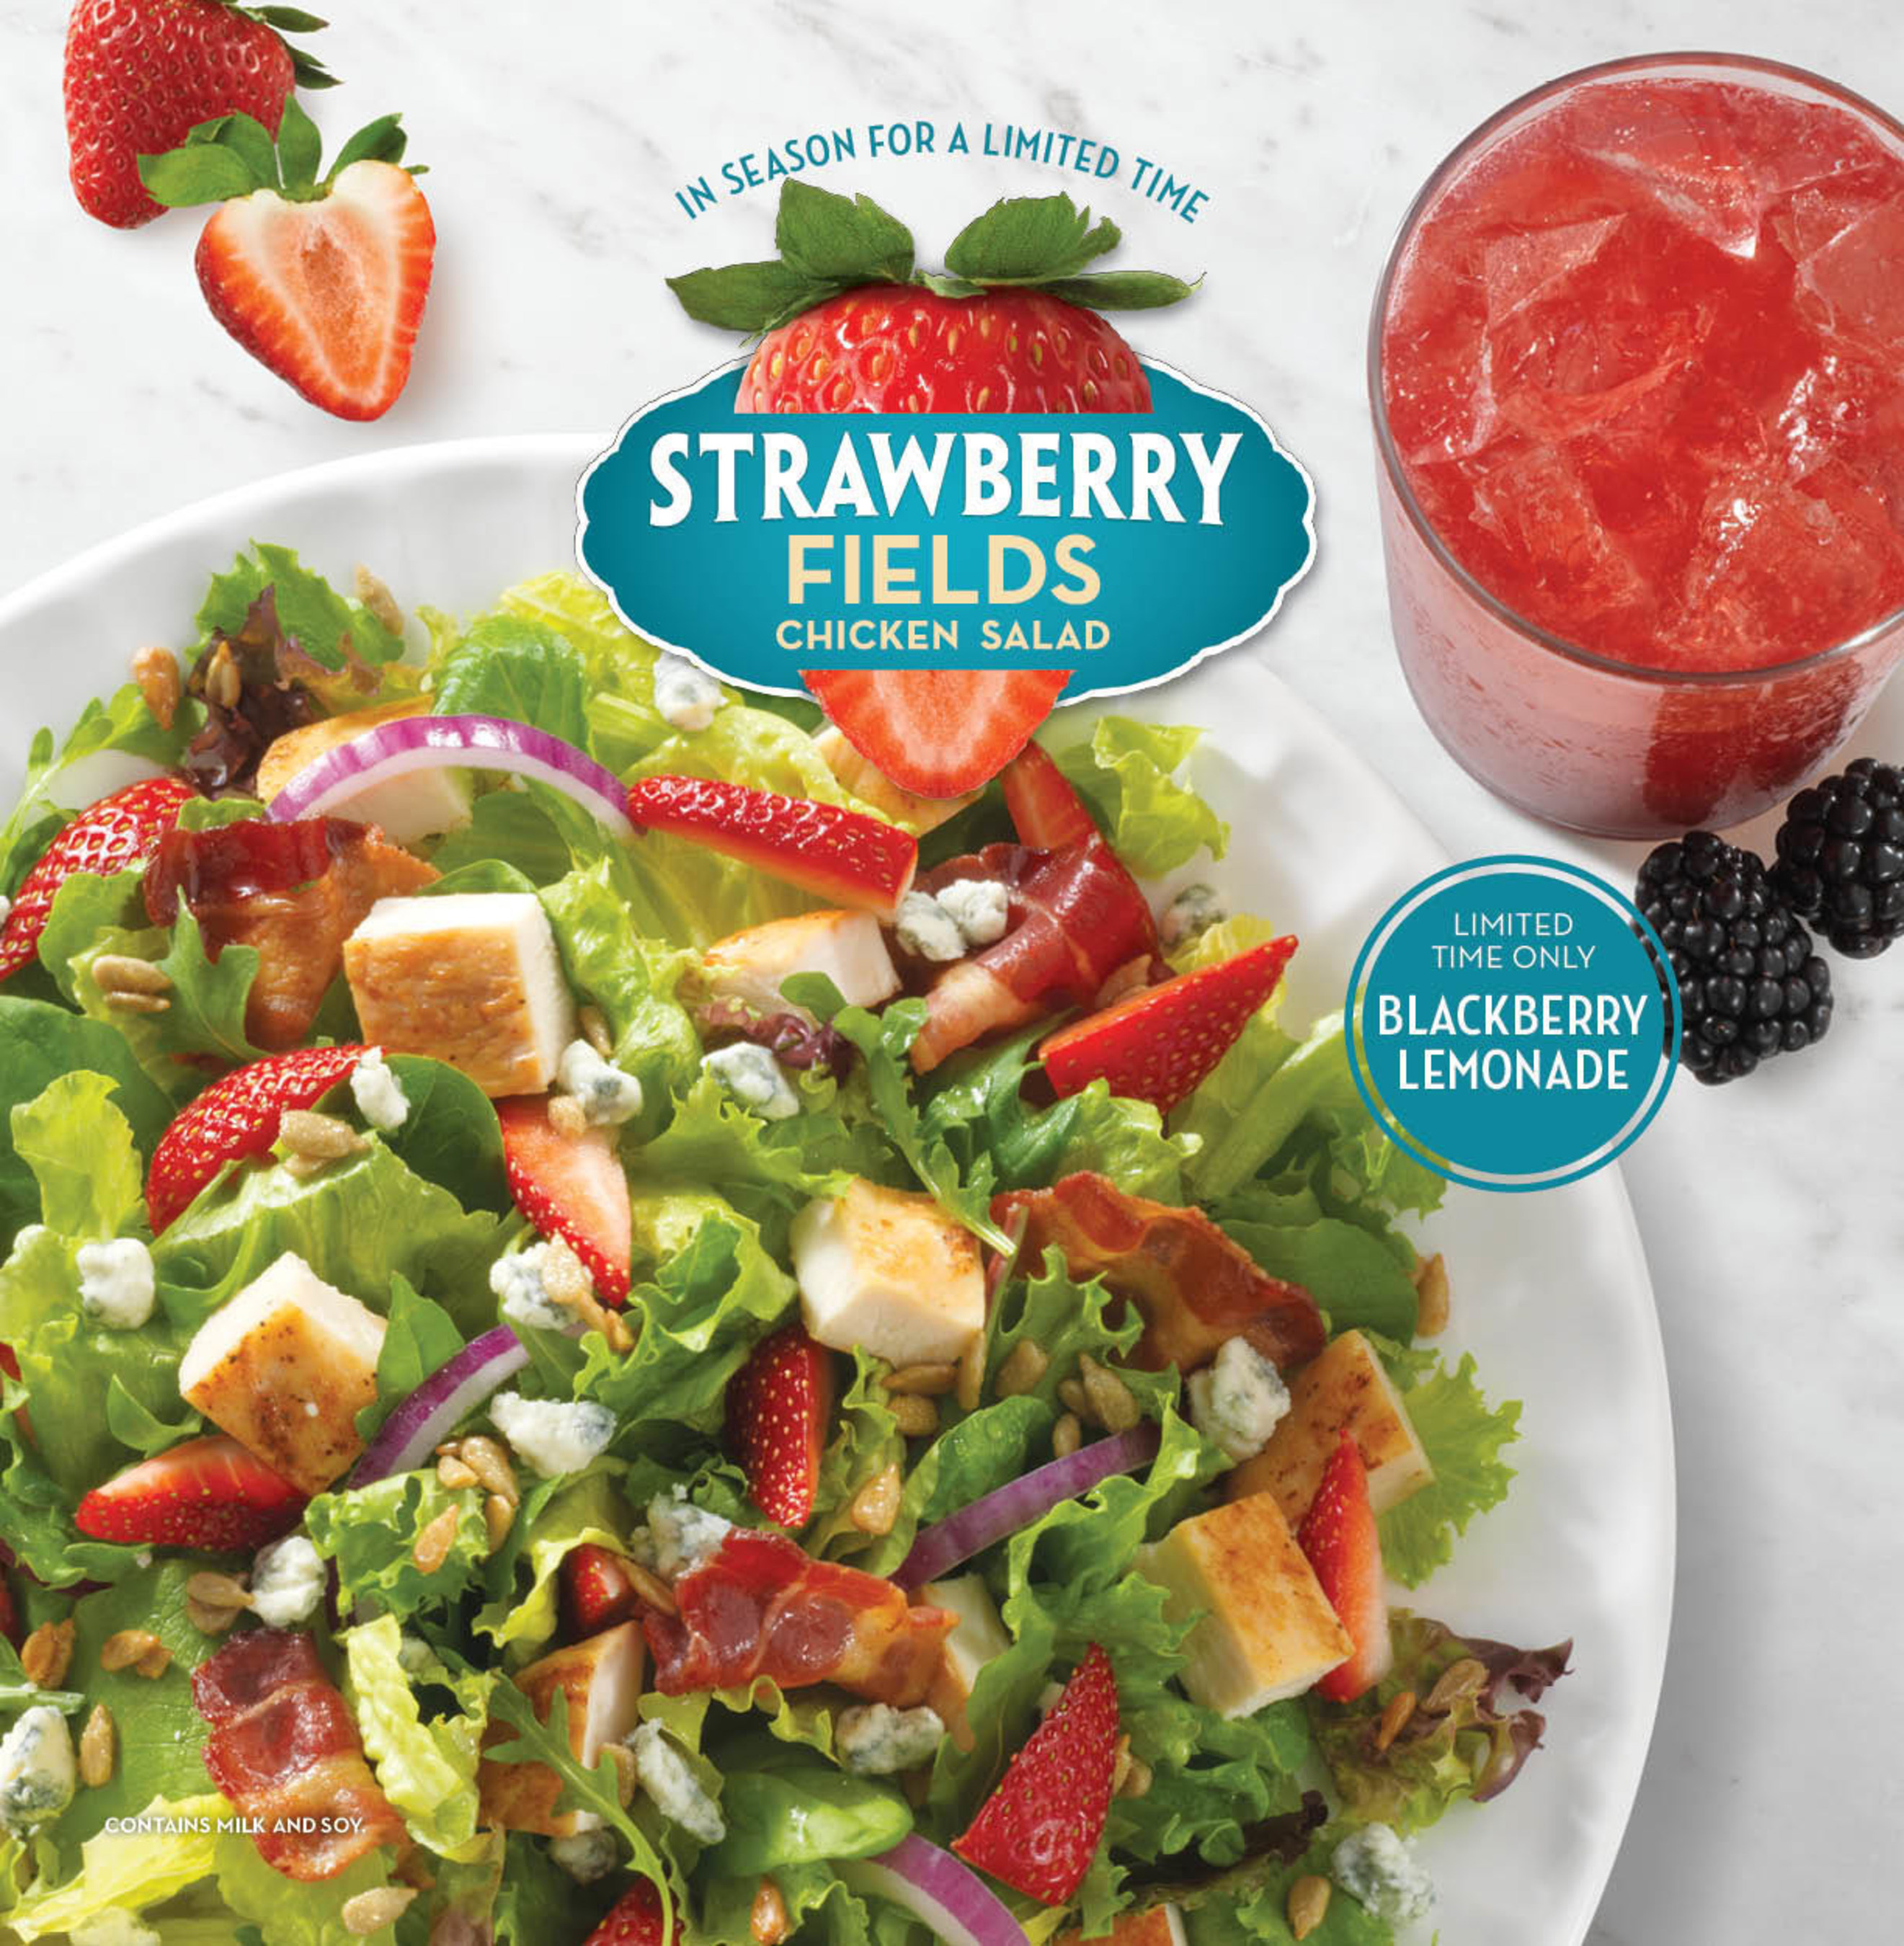 Wendy's is saying cheers to summer with three new three limited-time beverages, Blackberry Lemonade, Orange Mango FRUITEA CHILLERS and Blueberry Pineapple FRUITEA CHILLERS, to join the return of Wendy's seasonal Strawberry Fields Chicken Salad. The summer salad is made with fresh ingredients like ripe, sweet California strawberries, honey-roasted sunflower seeds and blue cheese crumbles, topped with freshly cooked Applewood Smoked bacon and a grilled chicken breast that is served warm.